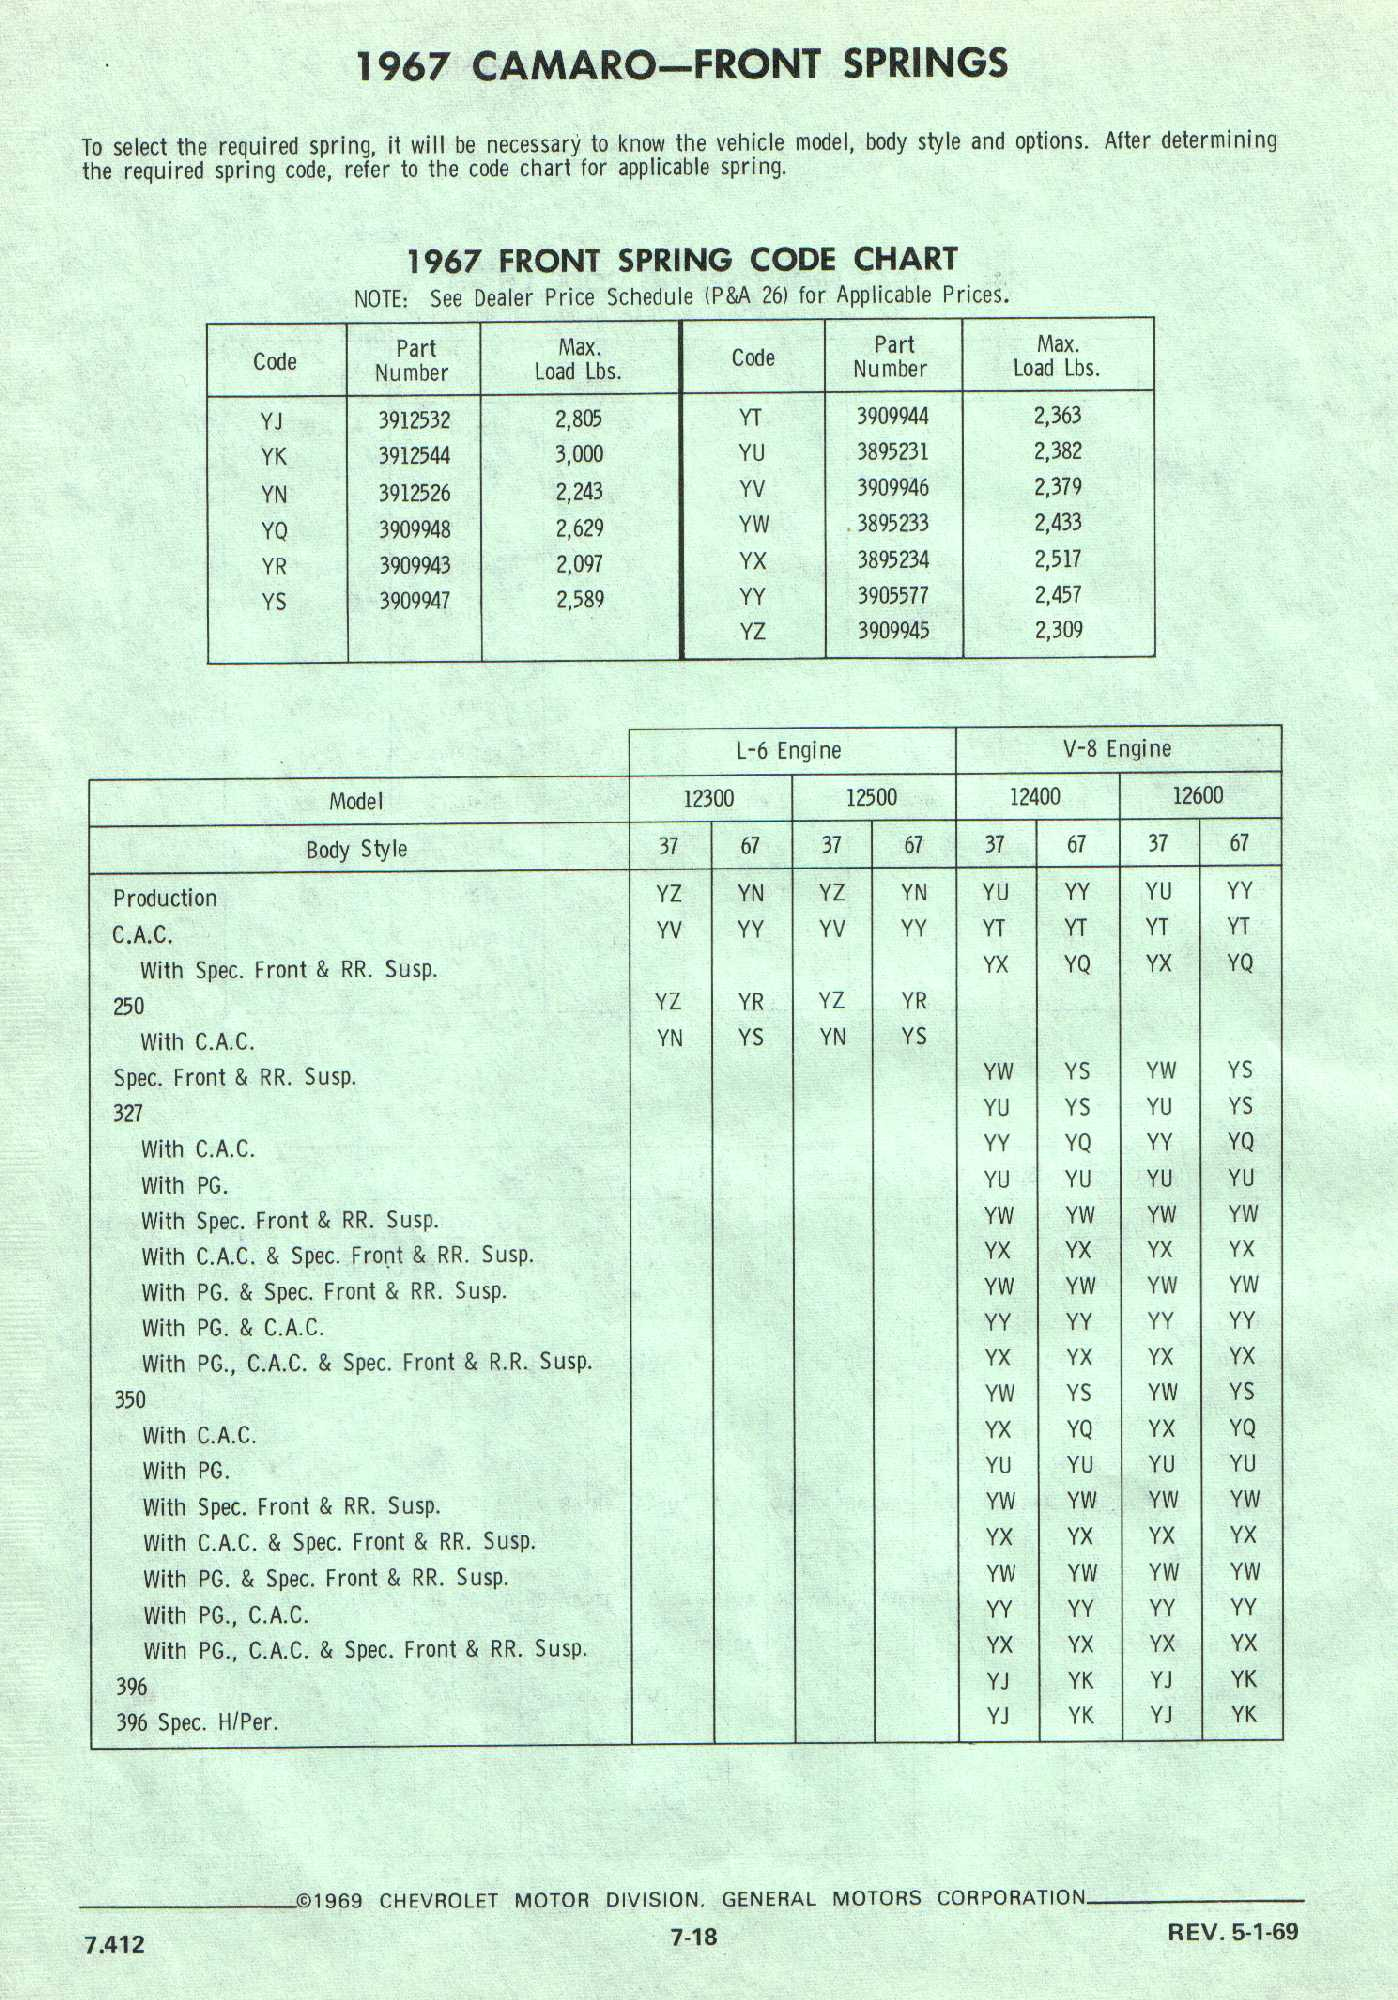 ... the 67 application table, both from service parts manuals.